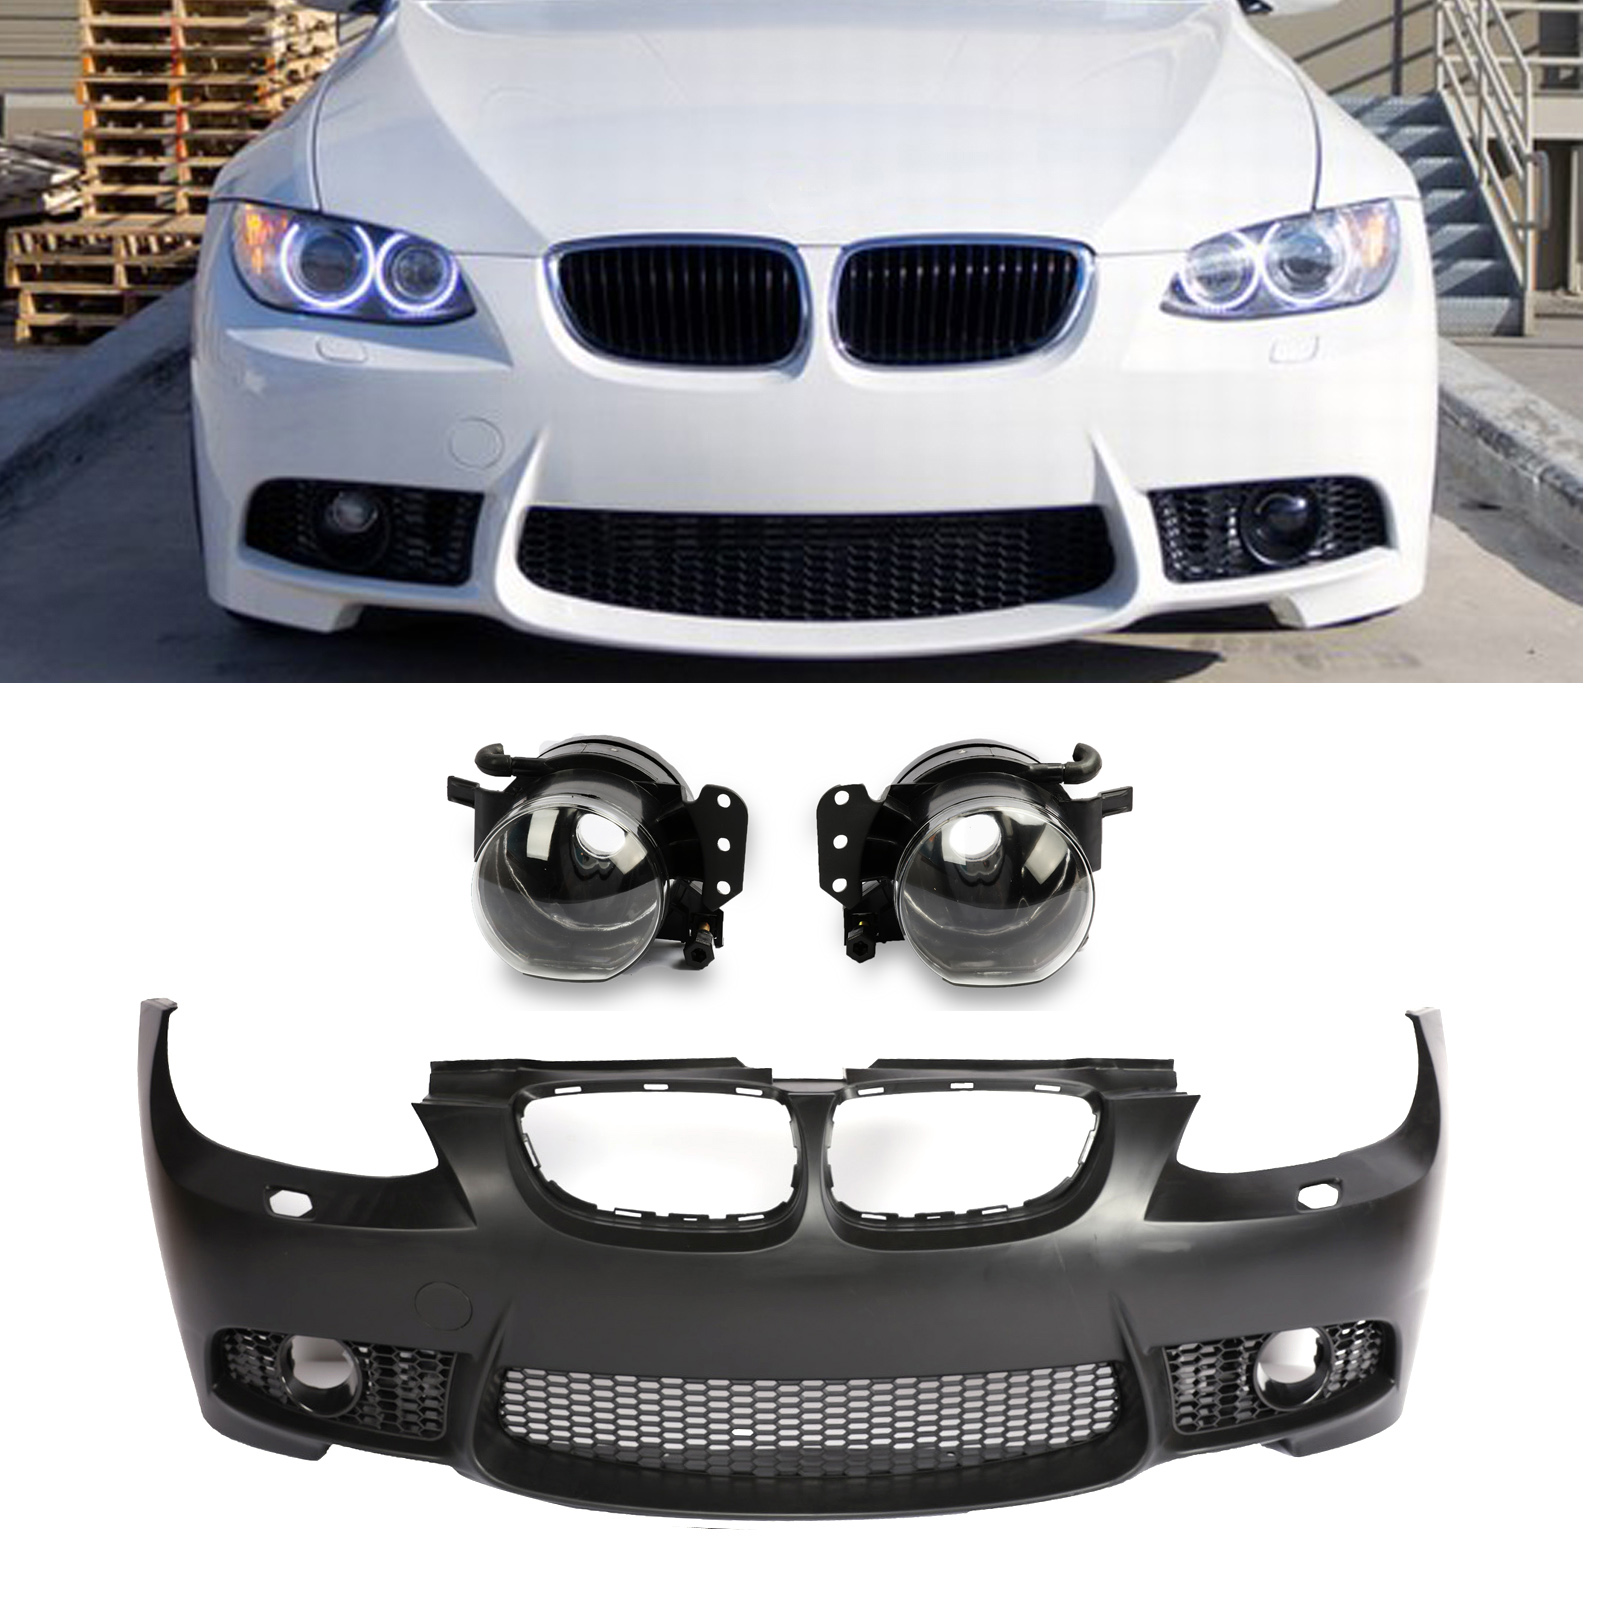 M3 Style Front Bumper Cover For Bmw E92 E93 328i 335i Coupe Convertible 07 10 Ebay